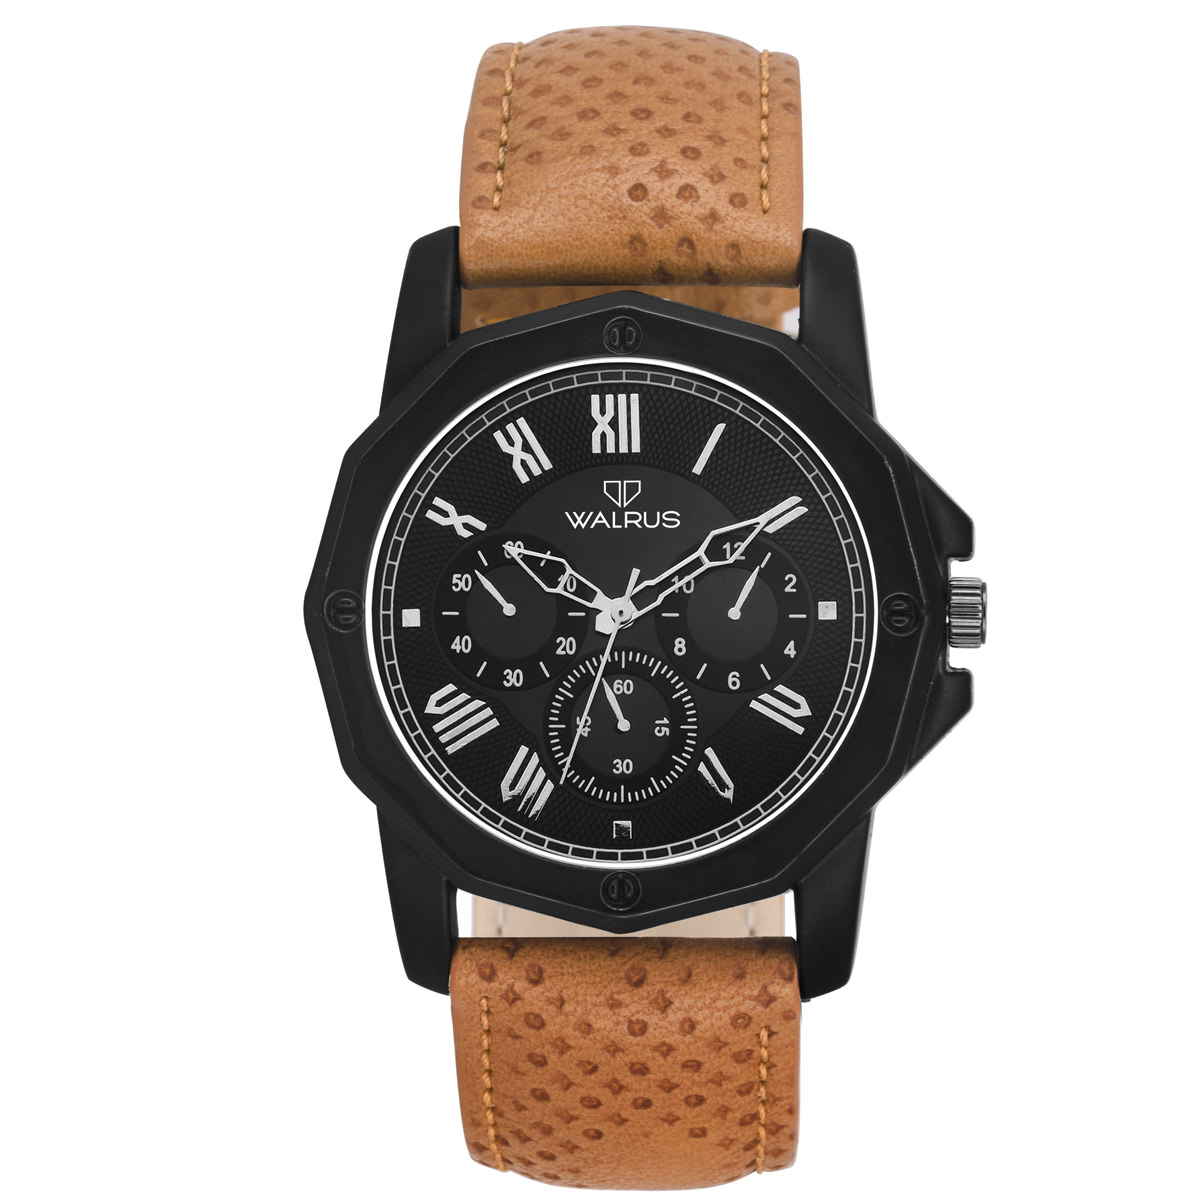 Walrus Brown Leather Watch For Men